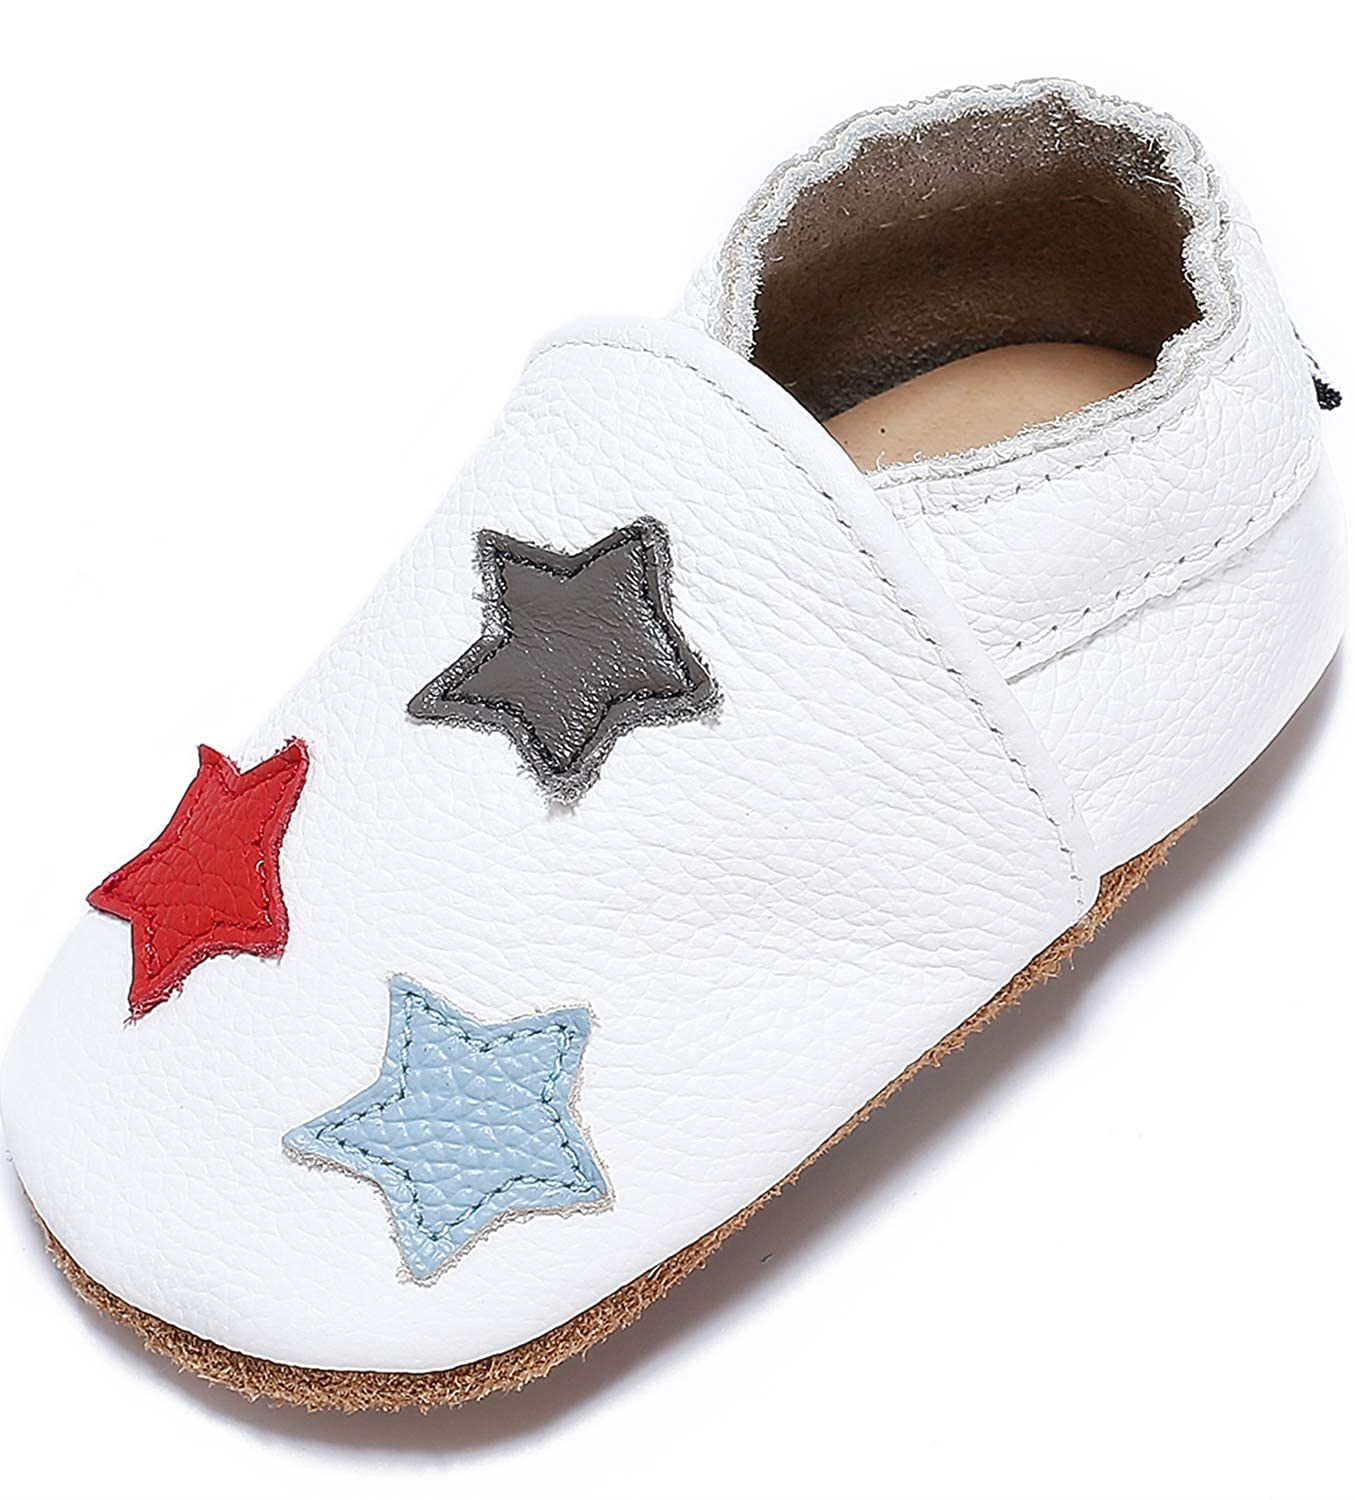 Mevimoi Unisex Soft Leather Baby Shoes ME-004